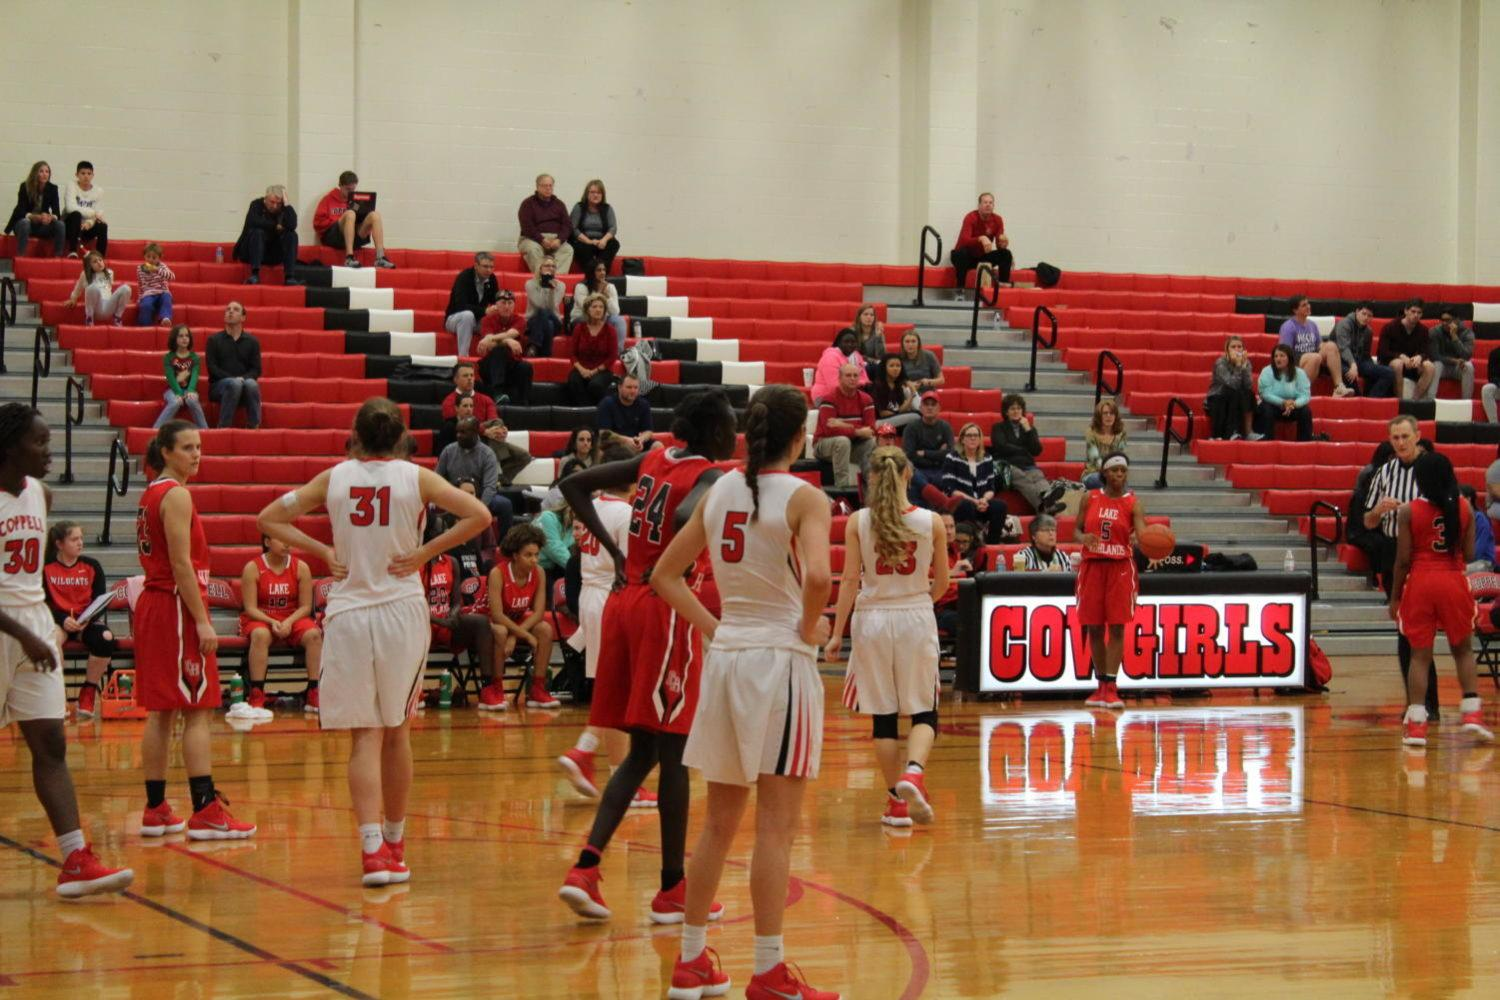 Coppell High School sophomore Chloe Hassman and the rest of the Cowgirls play defense against the Lake Highlands Friday night. The Coppell Cowgirls defeated the Lake Highlands girls basketball team 40-32 making the Cowgirls win their first District 9-6A game of the season in the School's Big Gymnasium